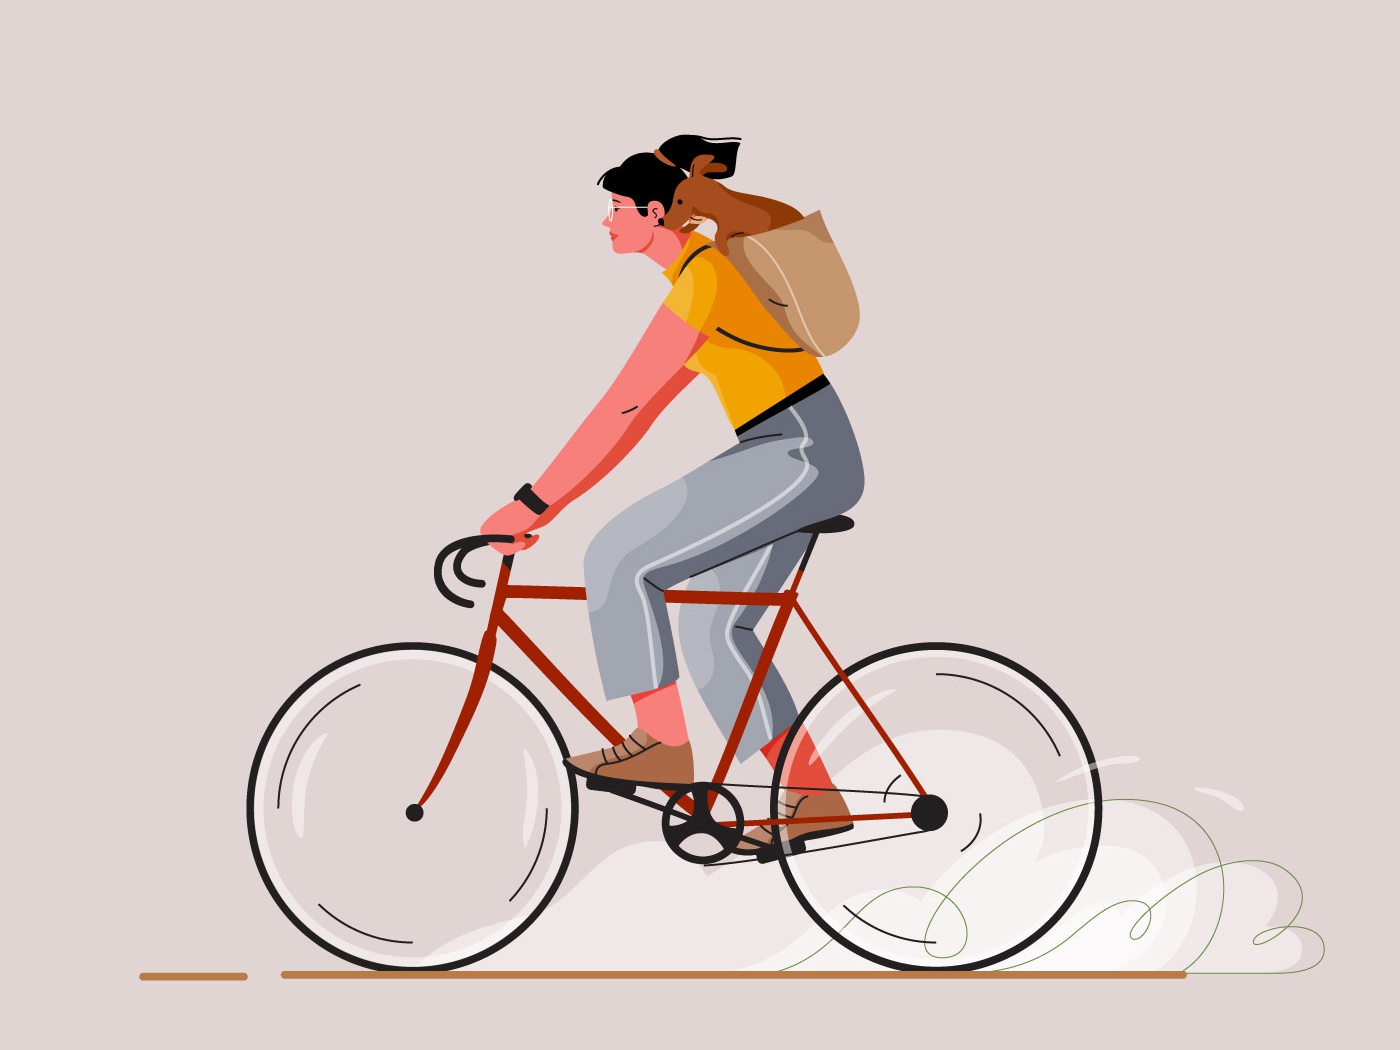 Cycling animal dog bicycle bike cycling girl graphic pastel woman vector character illustration